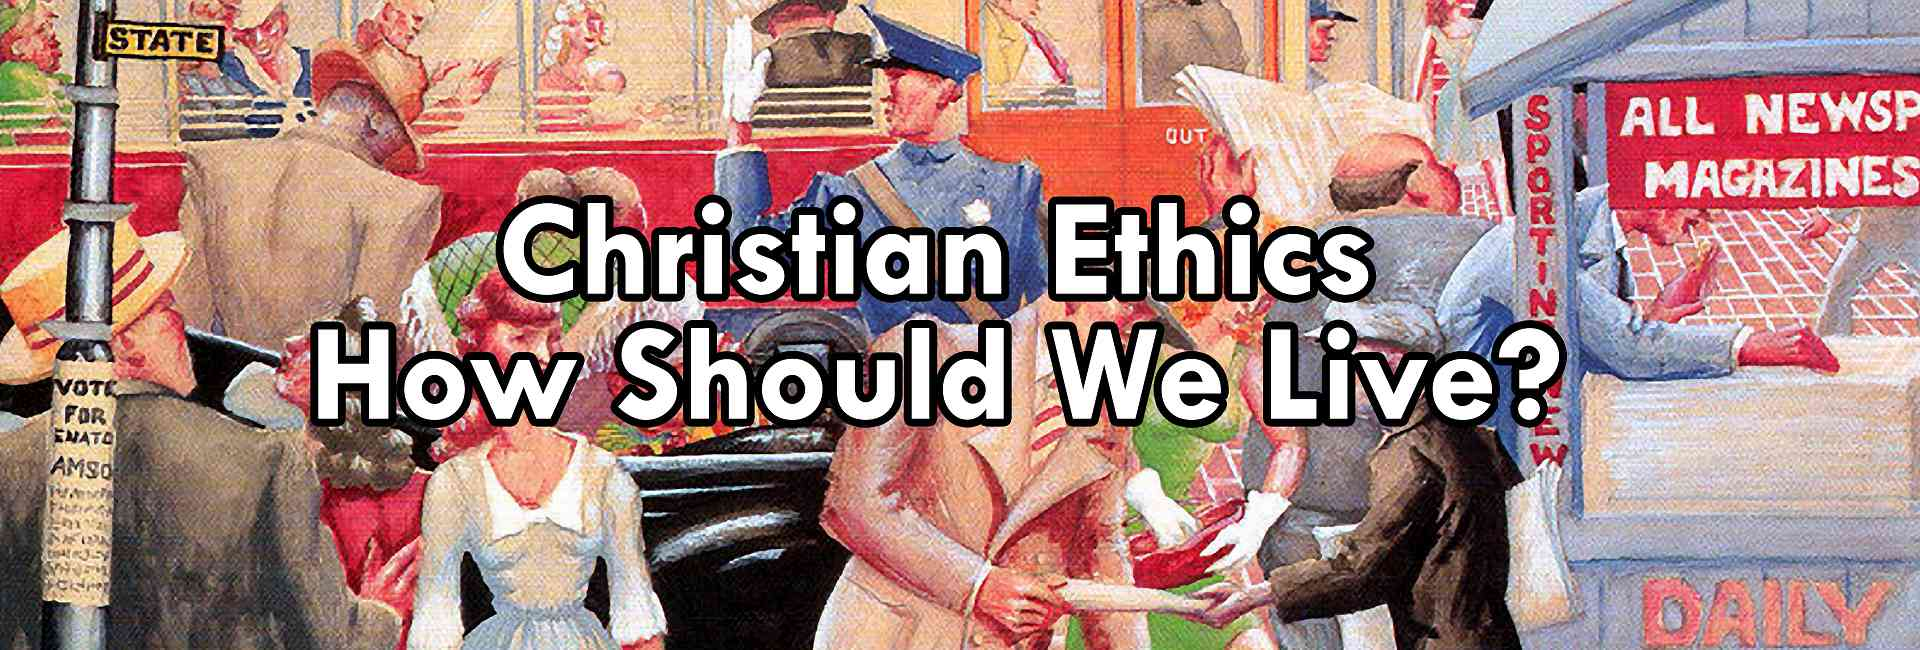 Christian Ethics: How Should We Live?